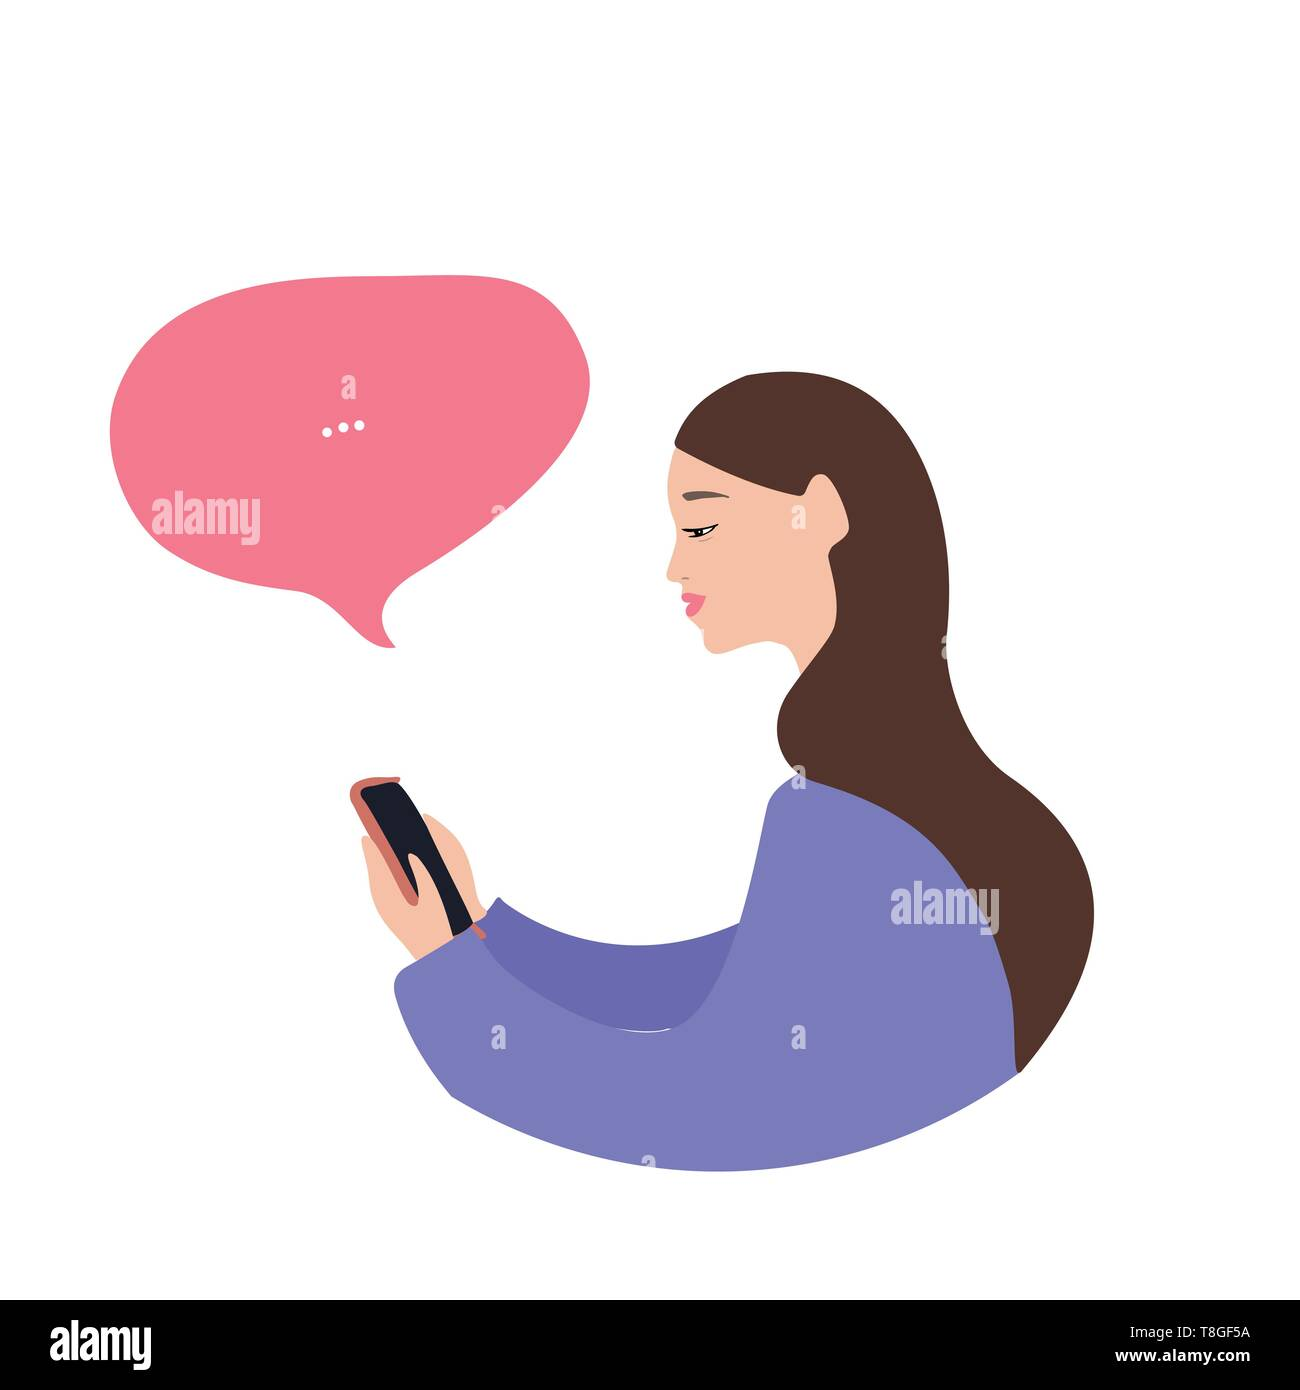 Beautiful caucasian woman with a smartphone, flat vector illustration on white background - Stock Image